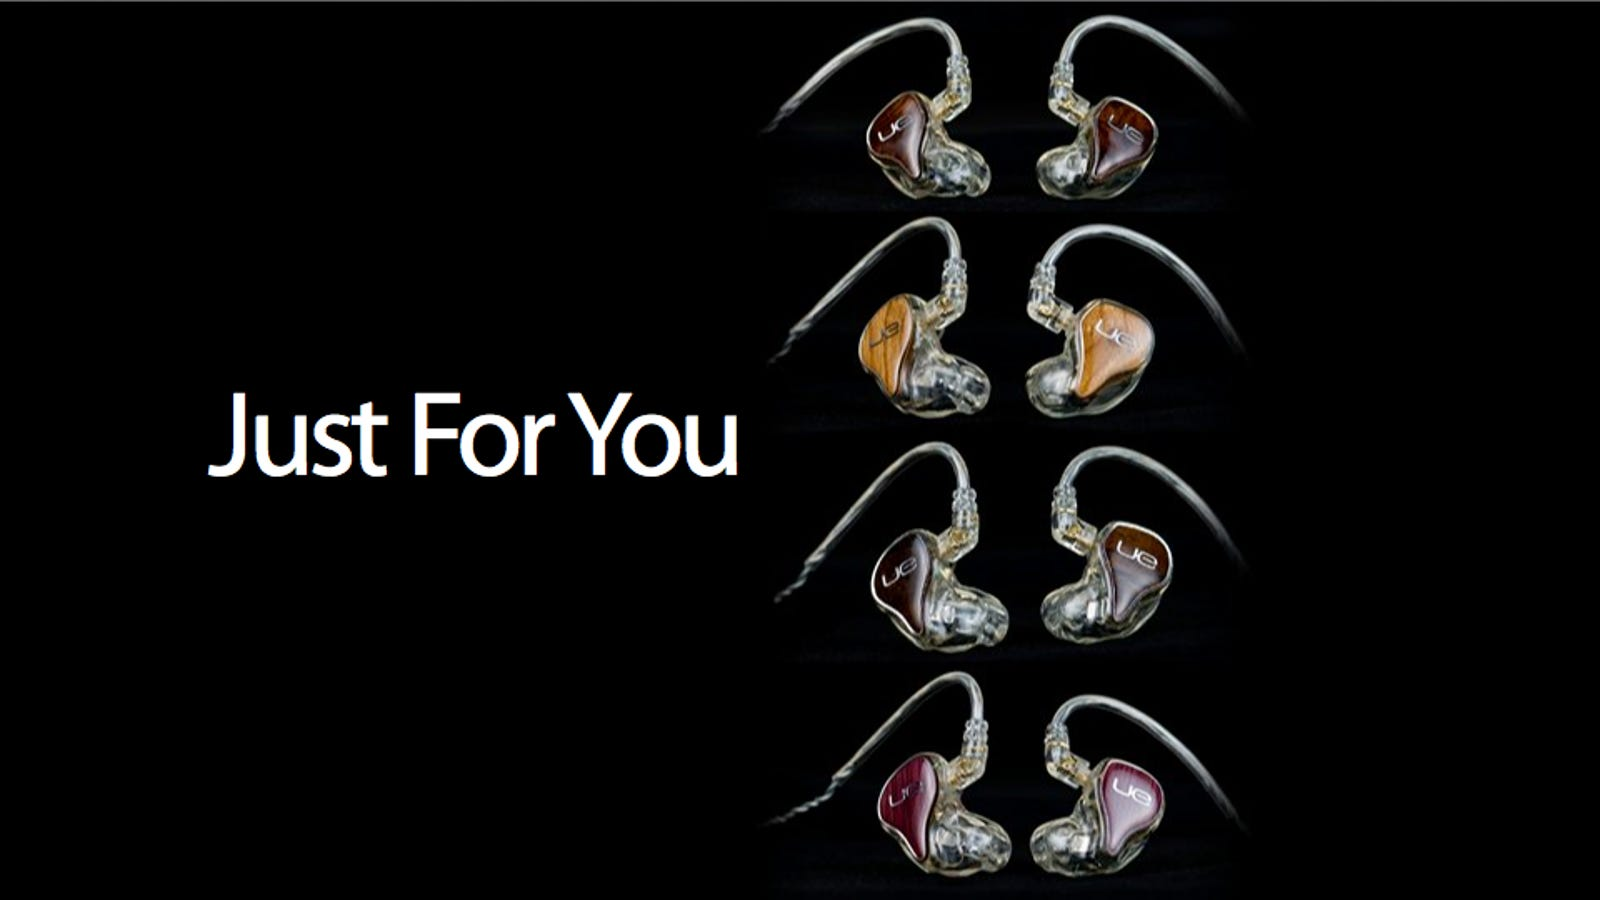 ear buds st30000000ab - $2000 Customizable Earbuds Come With a Personal Sound Coach